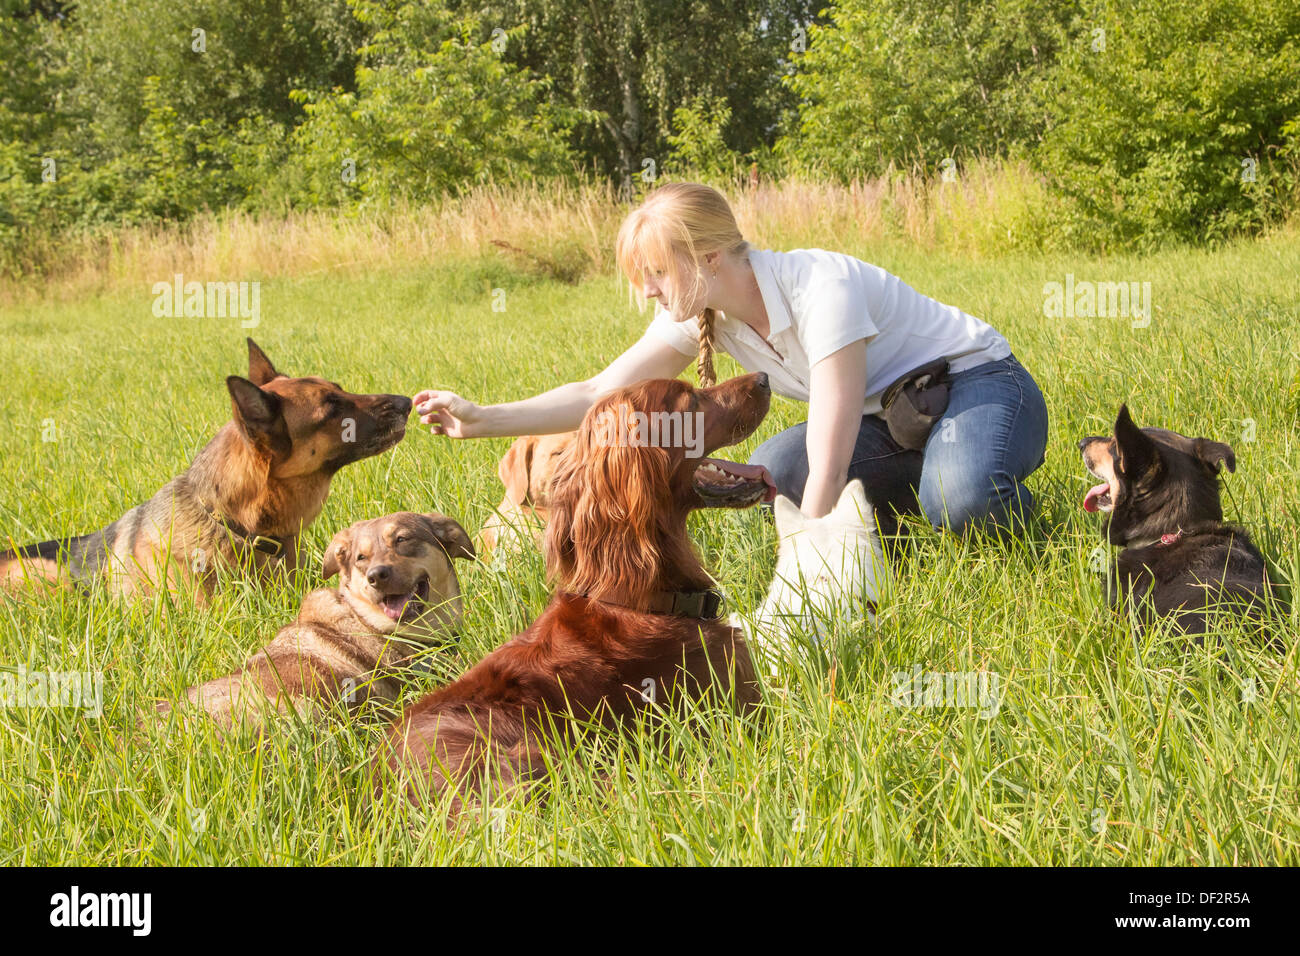 Female dog trainer feeds a dog with goodies after training - Stock Image